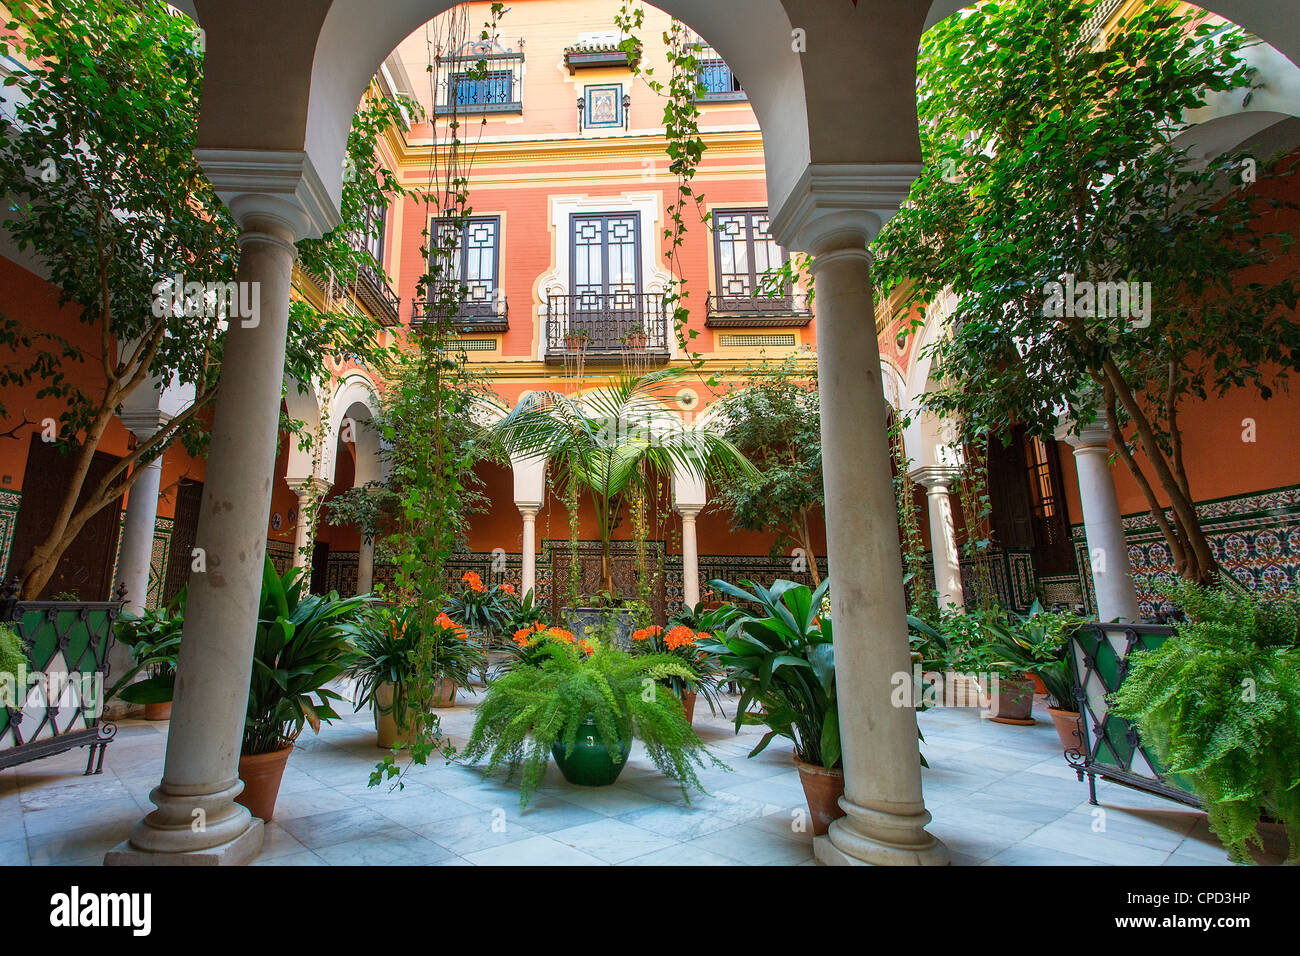 Europe, Spain Andalusia, Seville, Patio in Santa Cruz